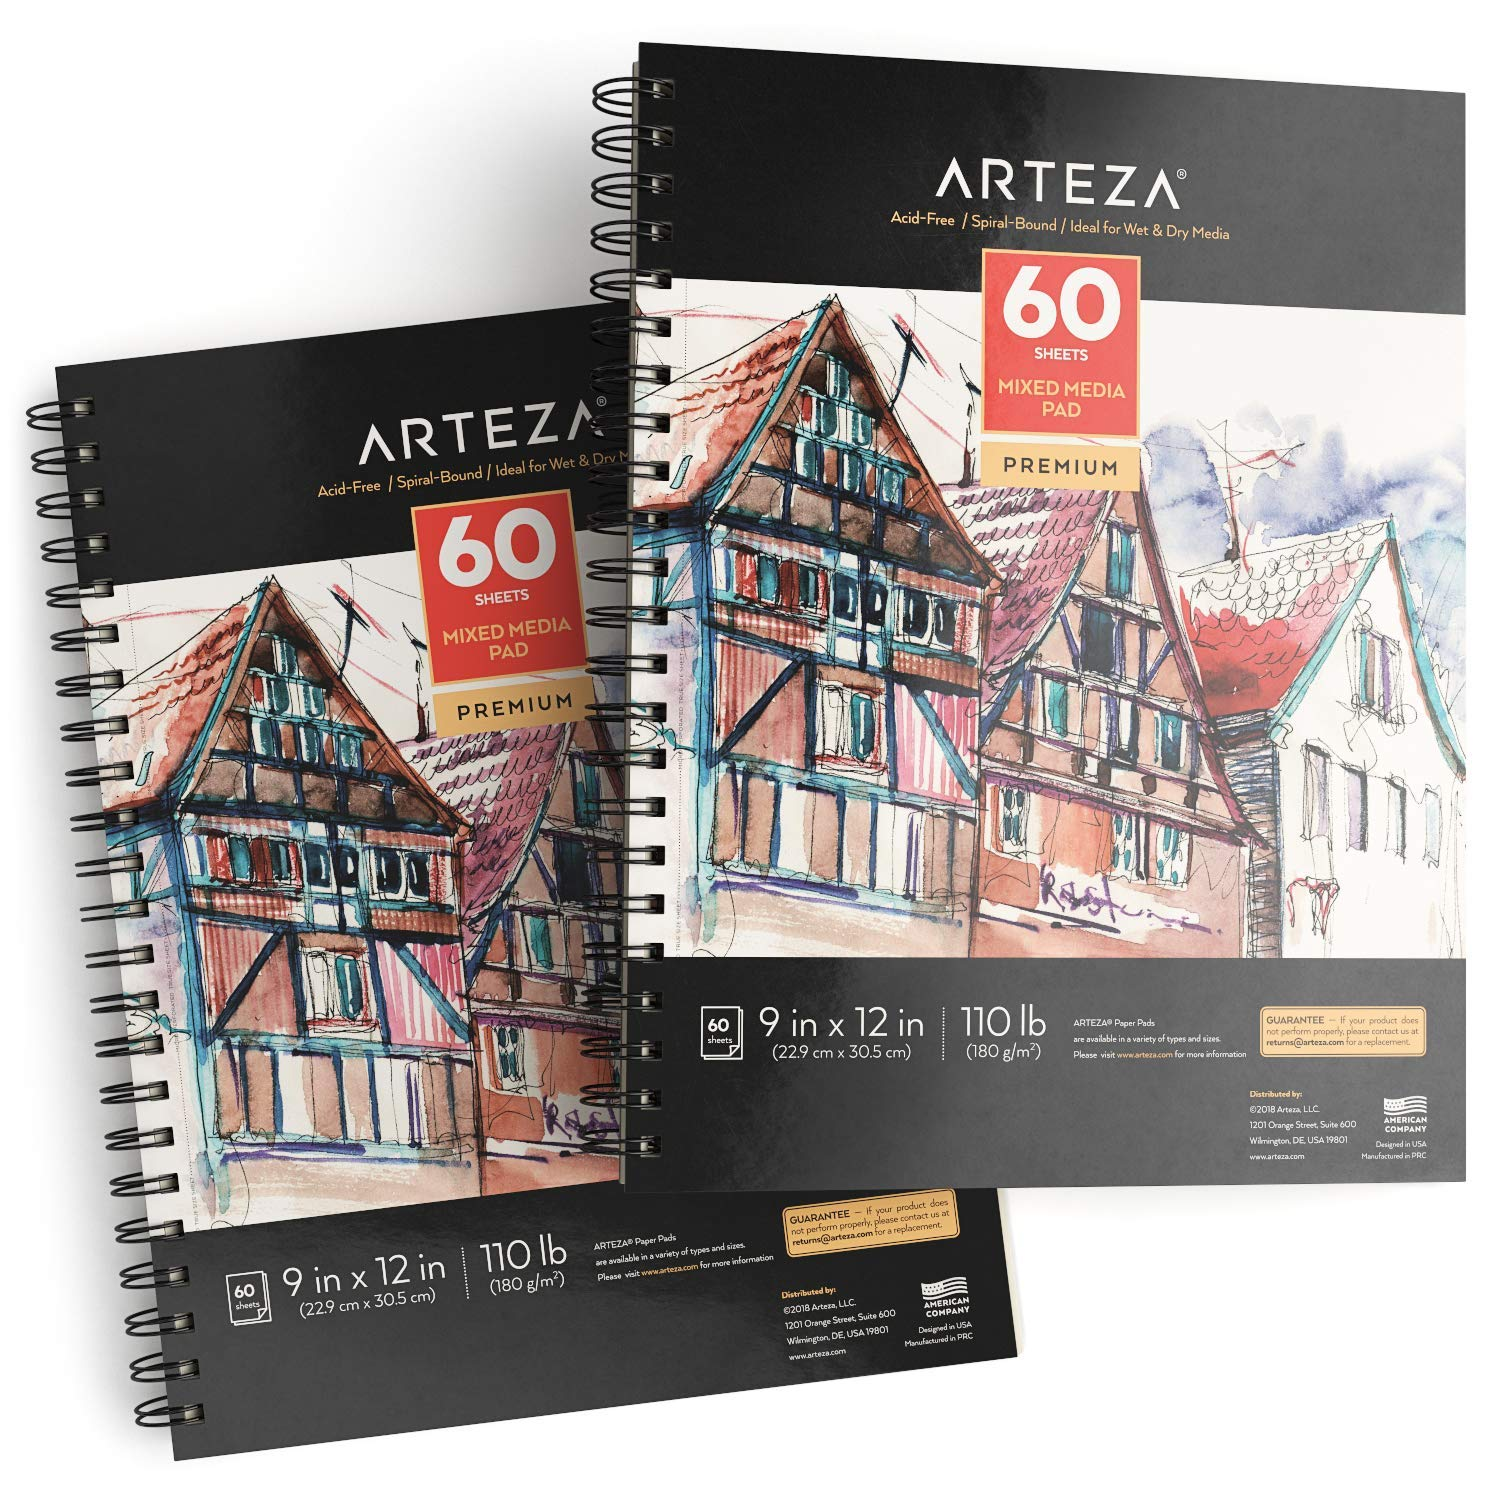 ARTEZA 9x12'' Mixed Media Sketch Pad, 2 Pack, 110lb/180gsm, 120 Sheets (Acid-Free, Micro-Perforated), Spiral-Bound Pad, Ideal for Wet and Dry Media, Sketching, Drawing, and Painting